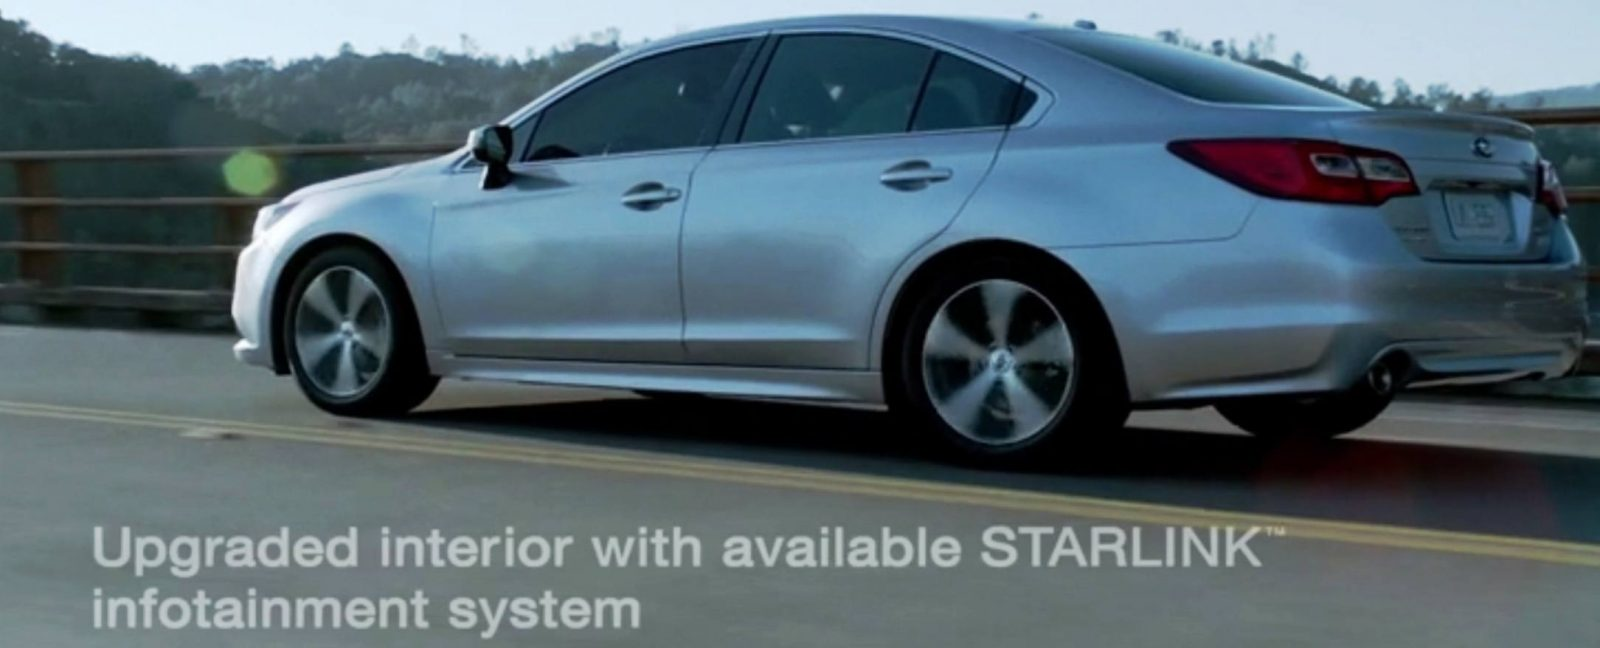 2015 Subaru Legacy Sedan -- More Lux and Tech in Cabin -- Finally Some Exterior Style -- Even 36MPG Highway  19